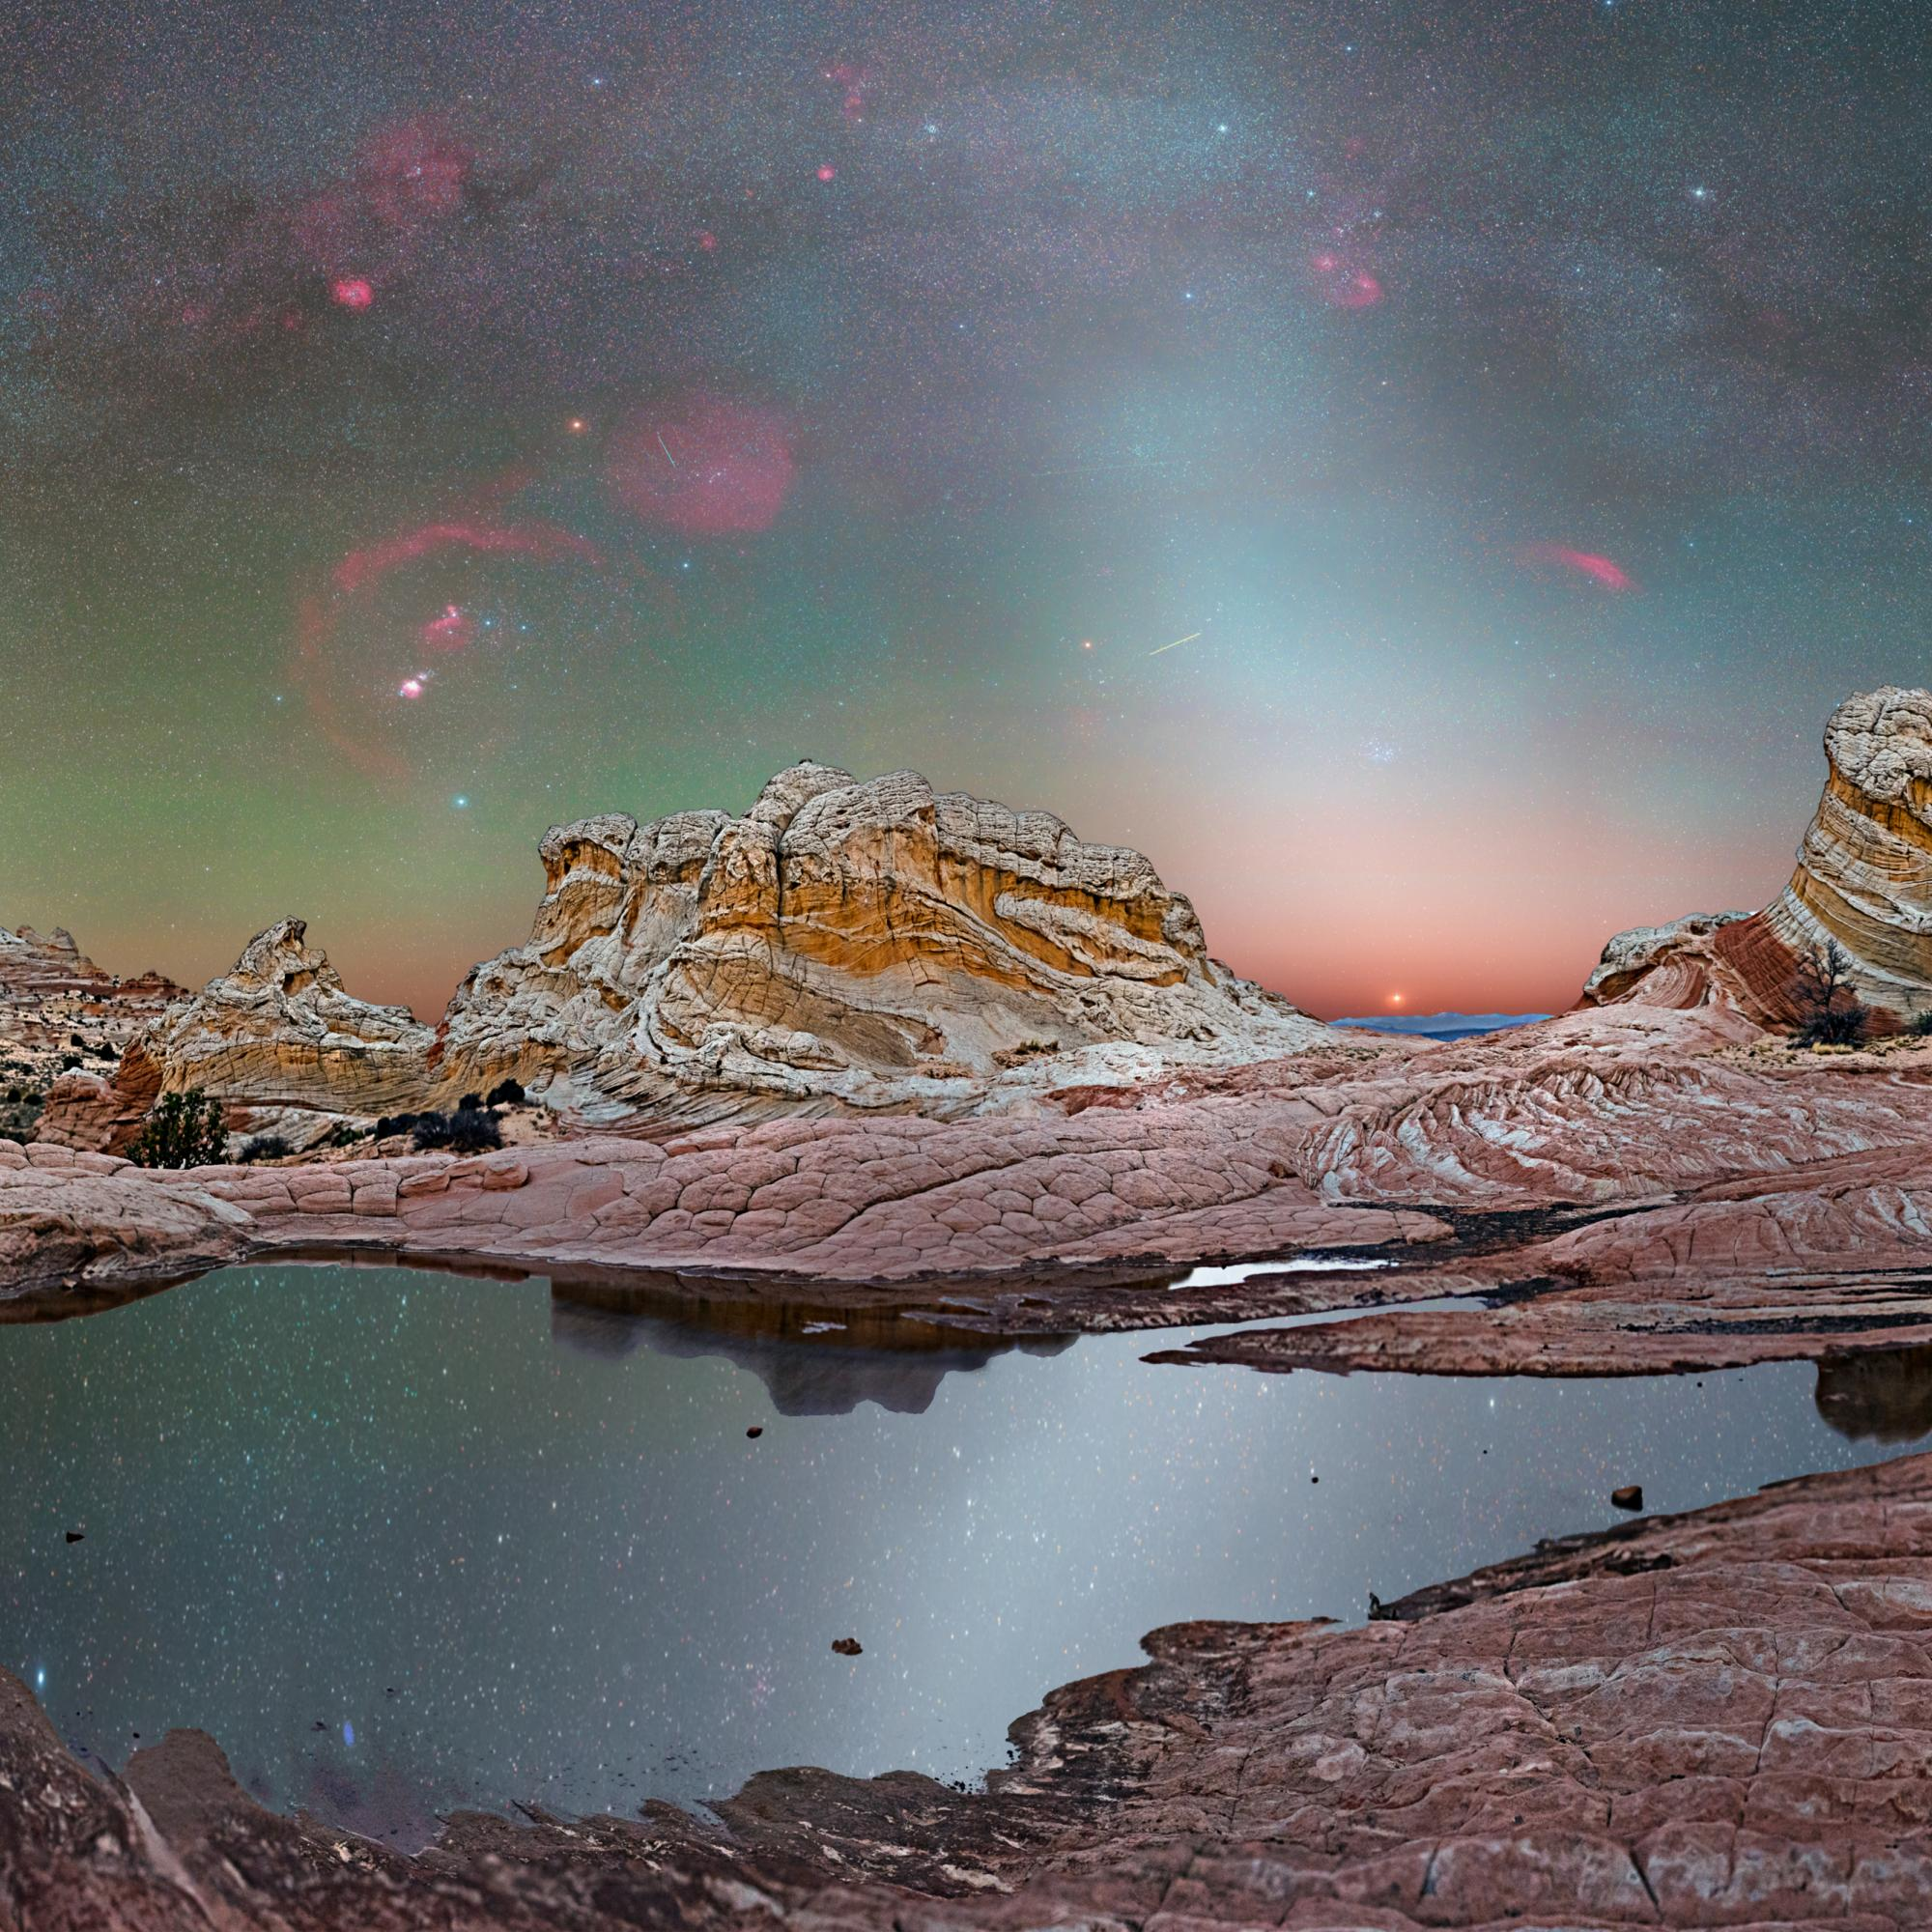 White Pocket Arizona with the Zodiacal Light